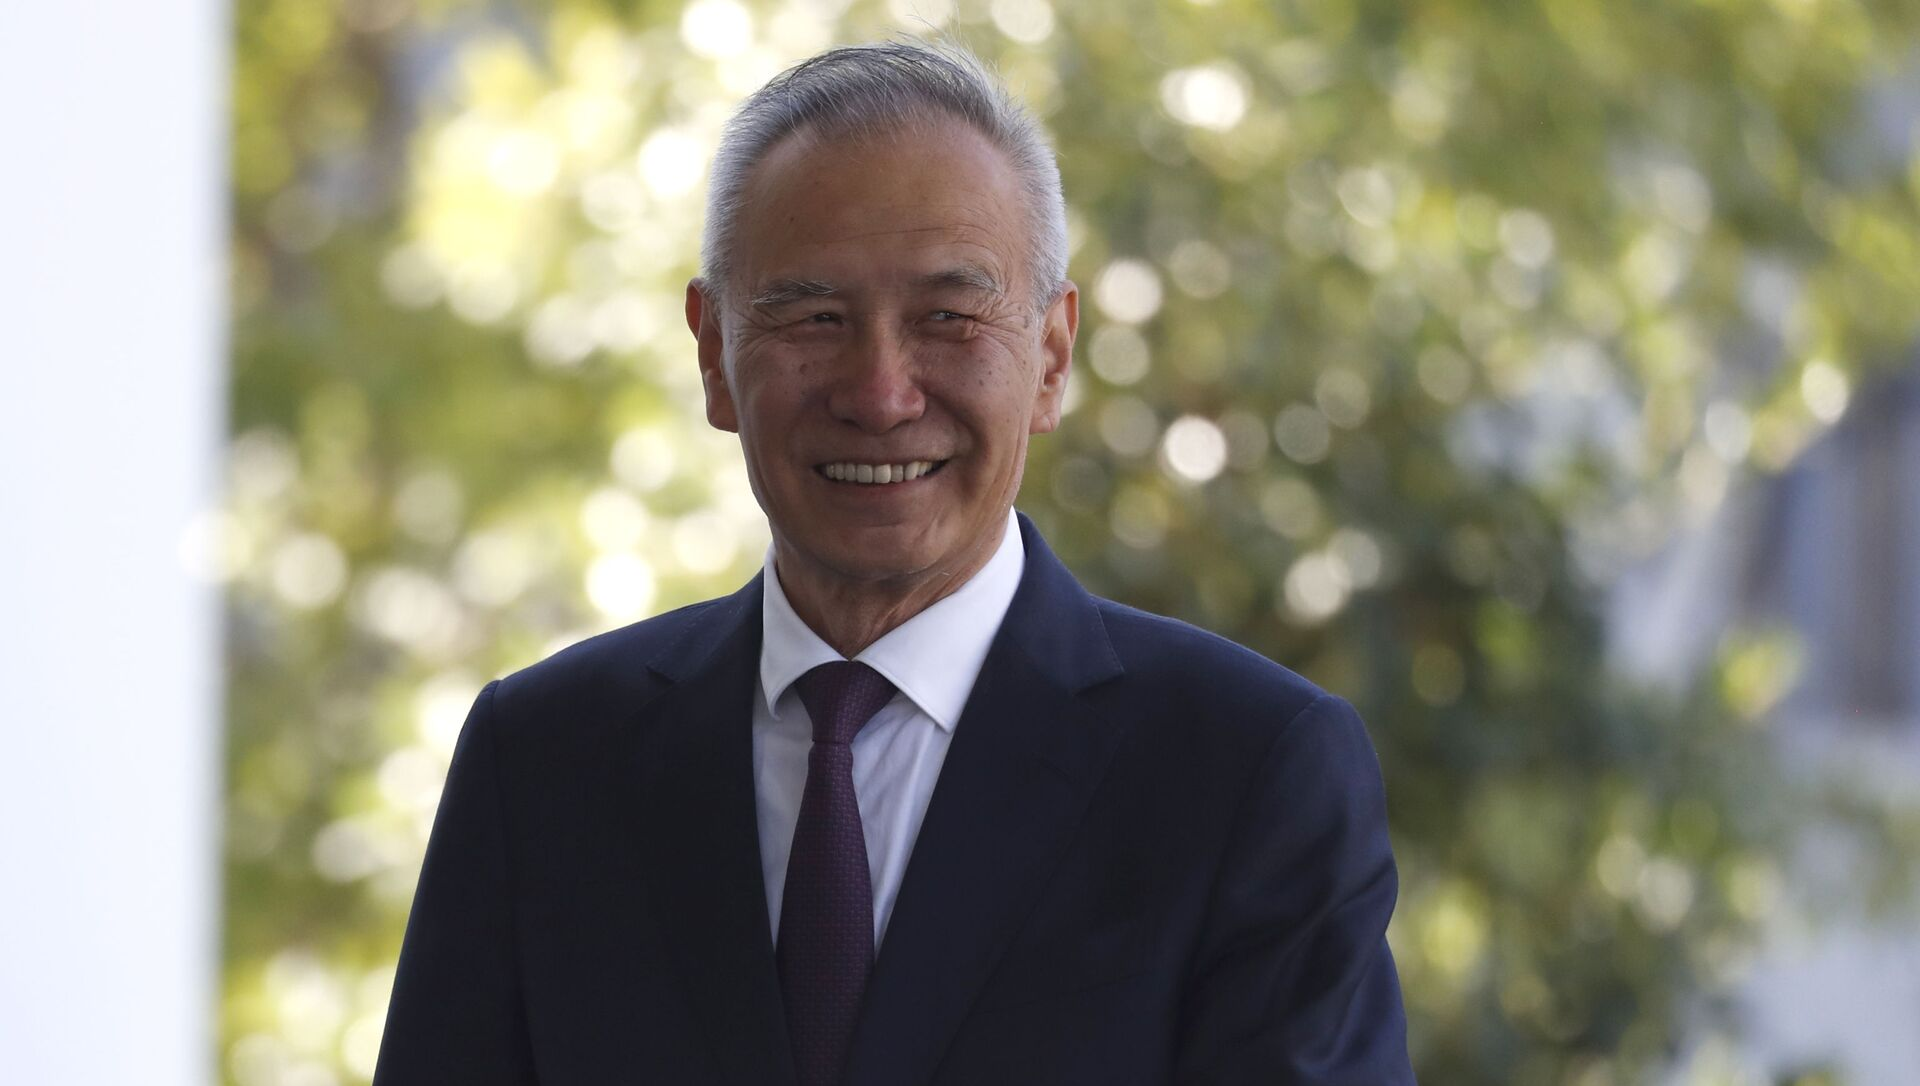 China's Vice Premier Liu He arrives at the West Wing for a meeting with President Donald Trump, Friday, Oct. 11, 2019, at the White House in Washington.  - Sputnik Việt Nam, 1920, 27.05.2021